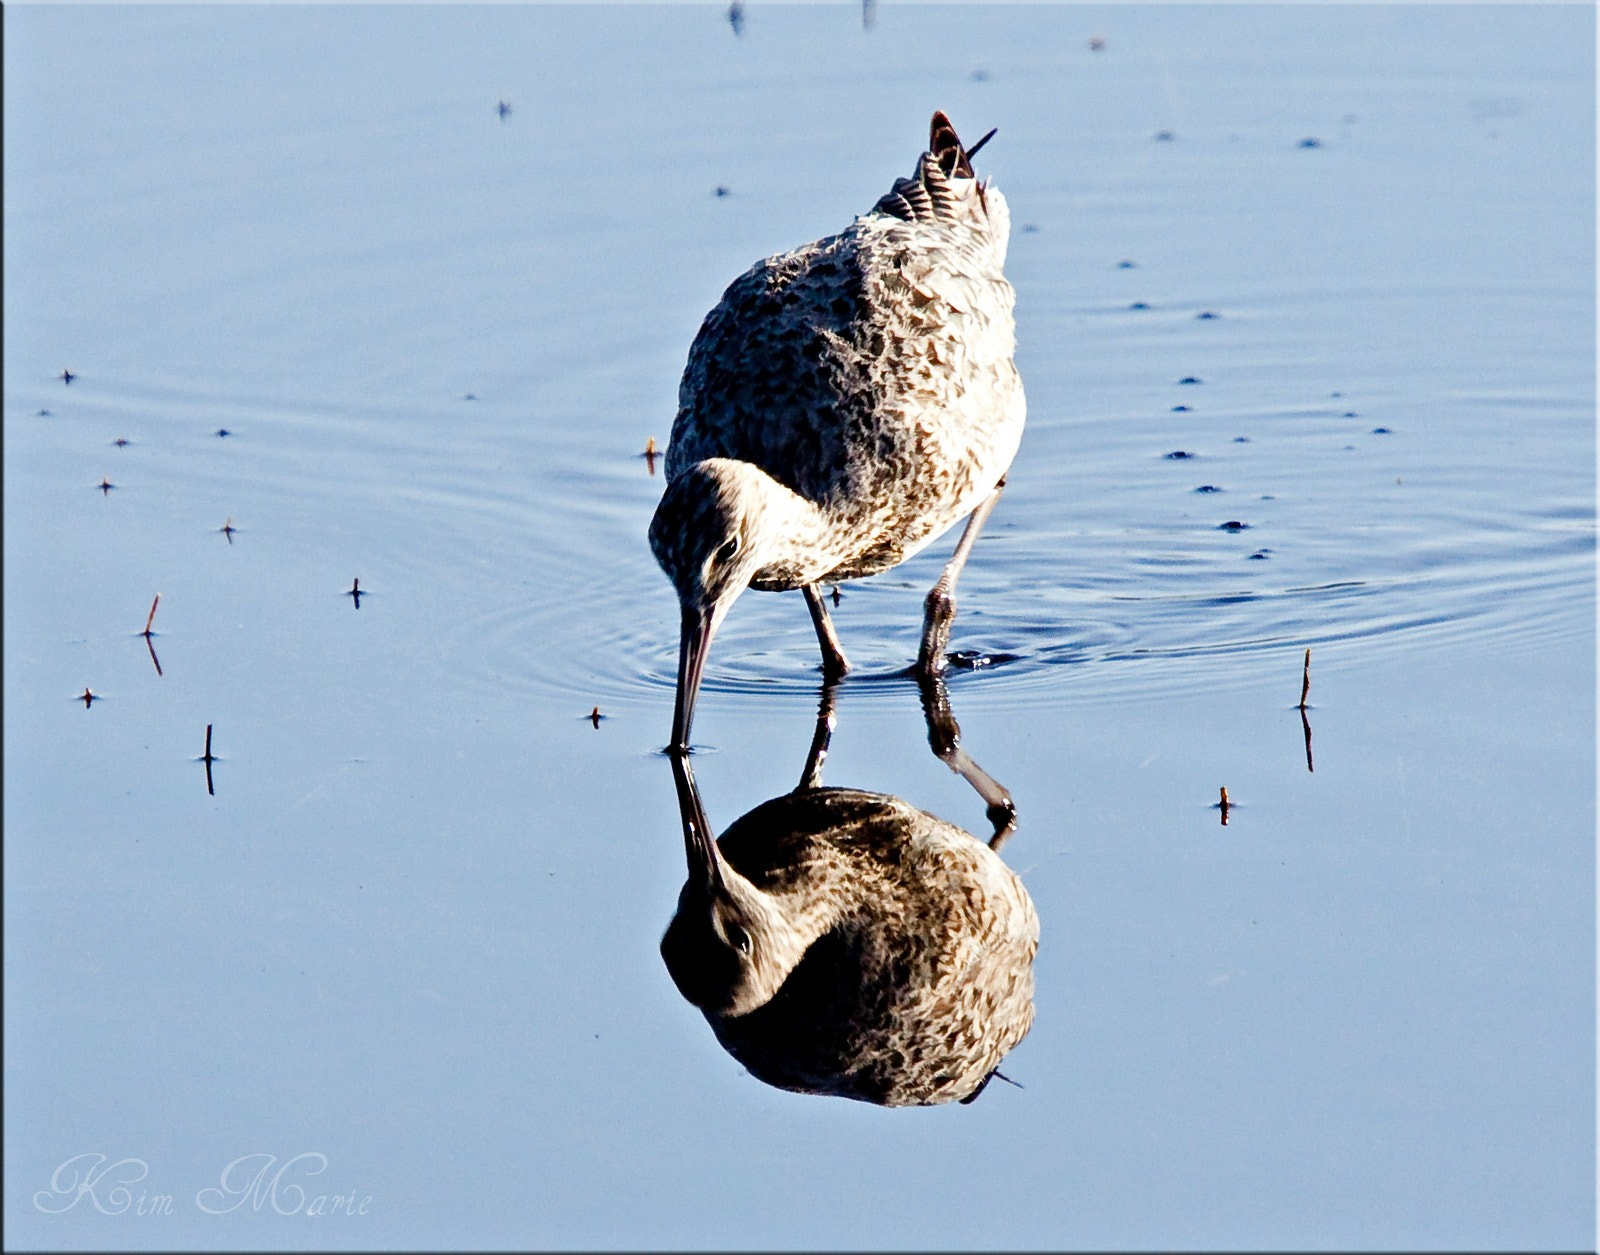 Photograph Reflections by Kim Gagnon on 500px